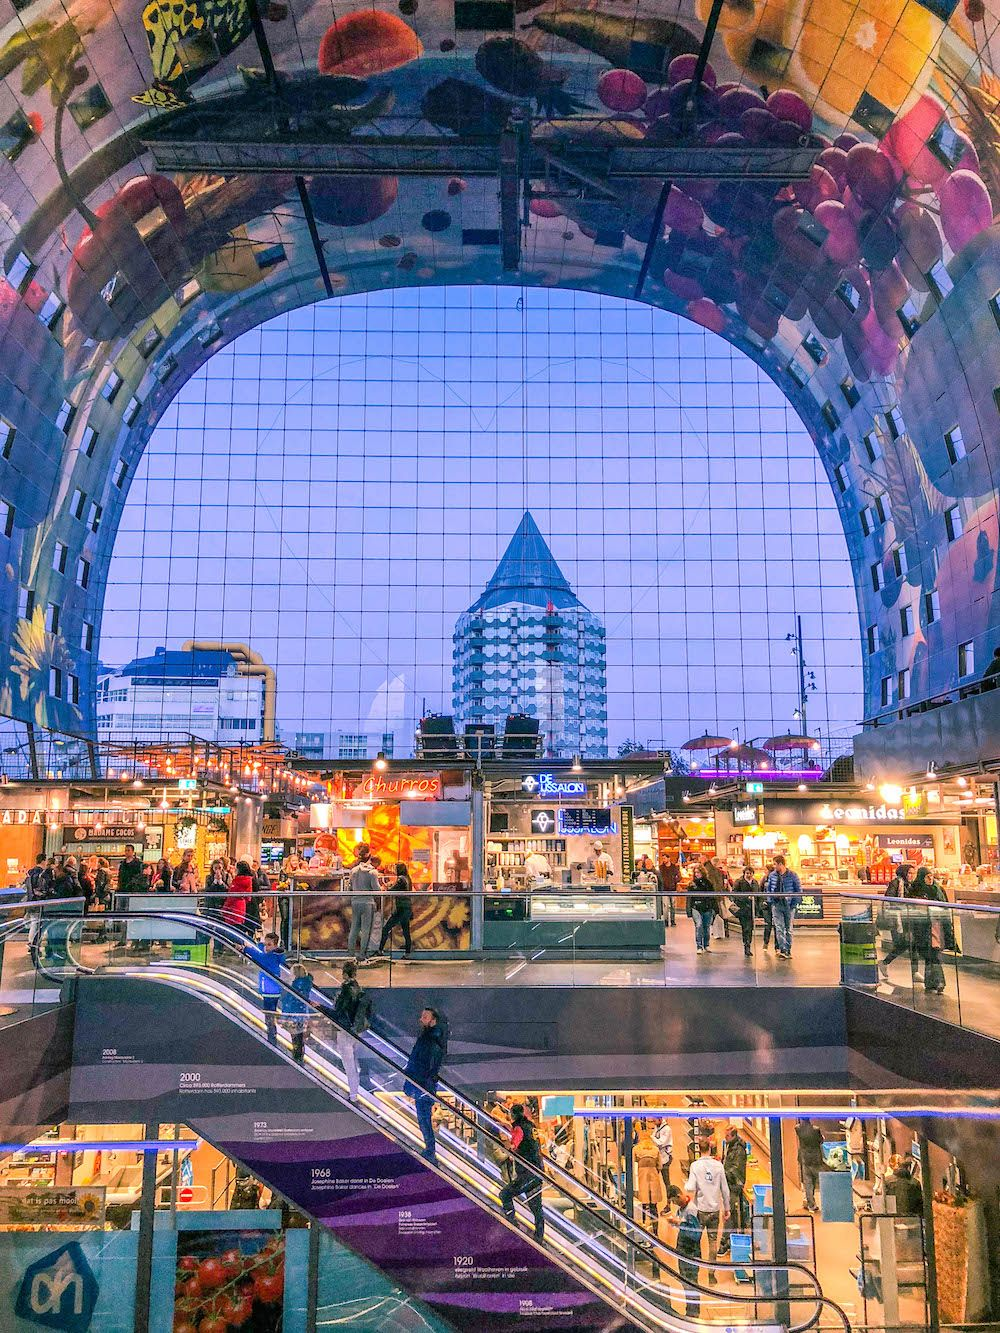 27 Museums And Art Galeries In Rotterdam Weekends In Rotterdam In 2021 Rotterdam Fun Things To Do Europe Travel Destinations